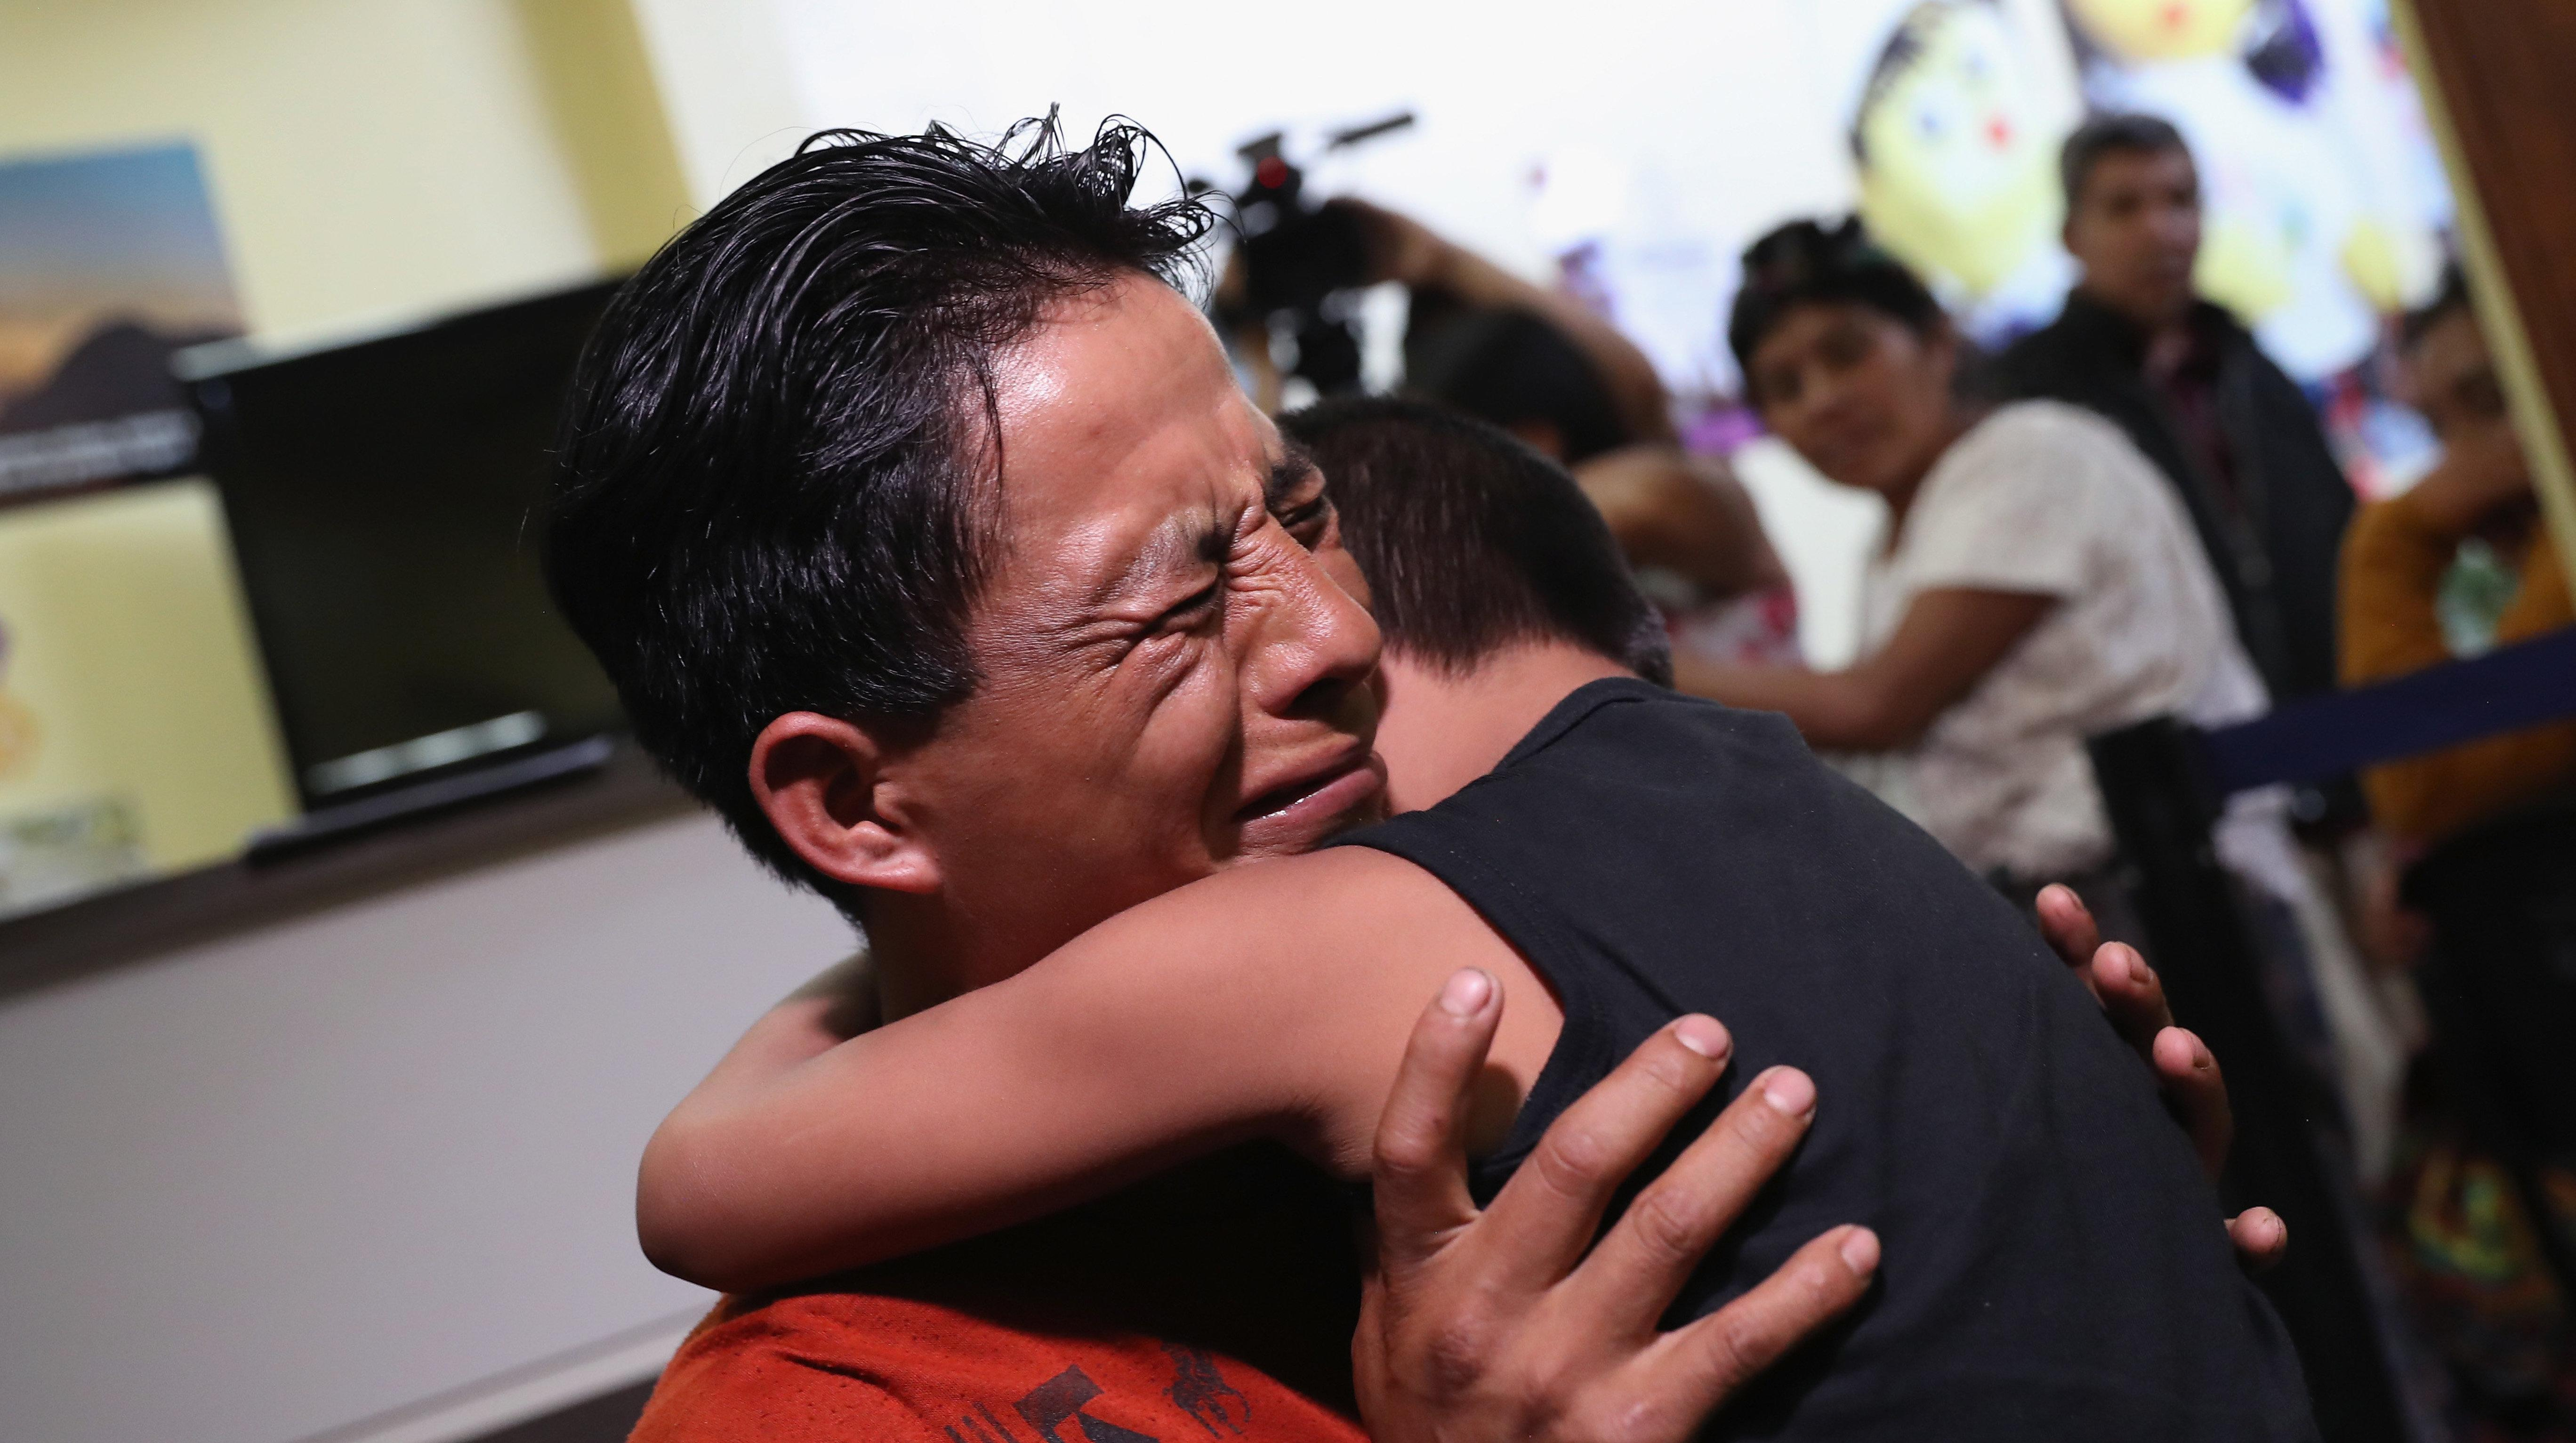 Trump Administration May Have To Reunite Thousands Of More Families, Judge Rules